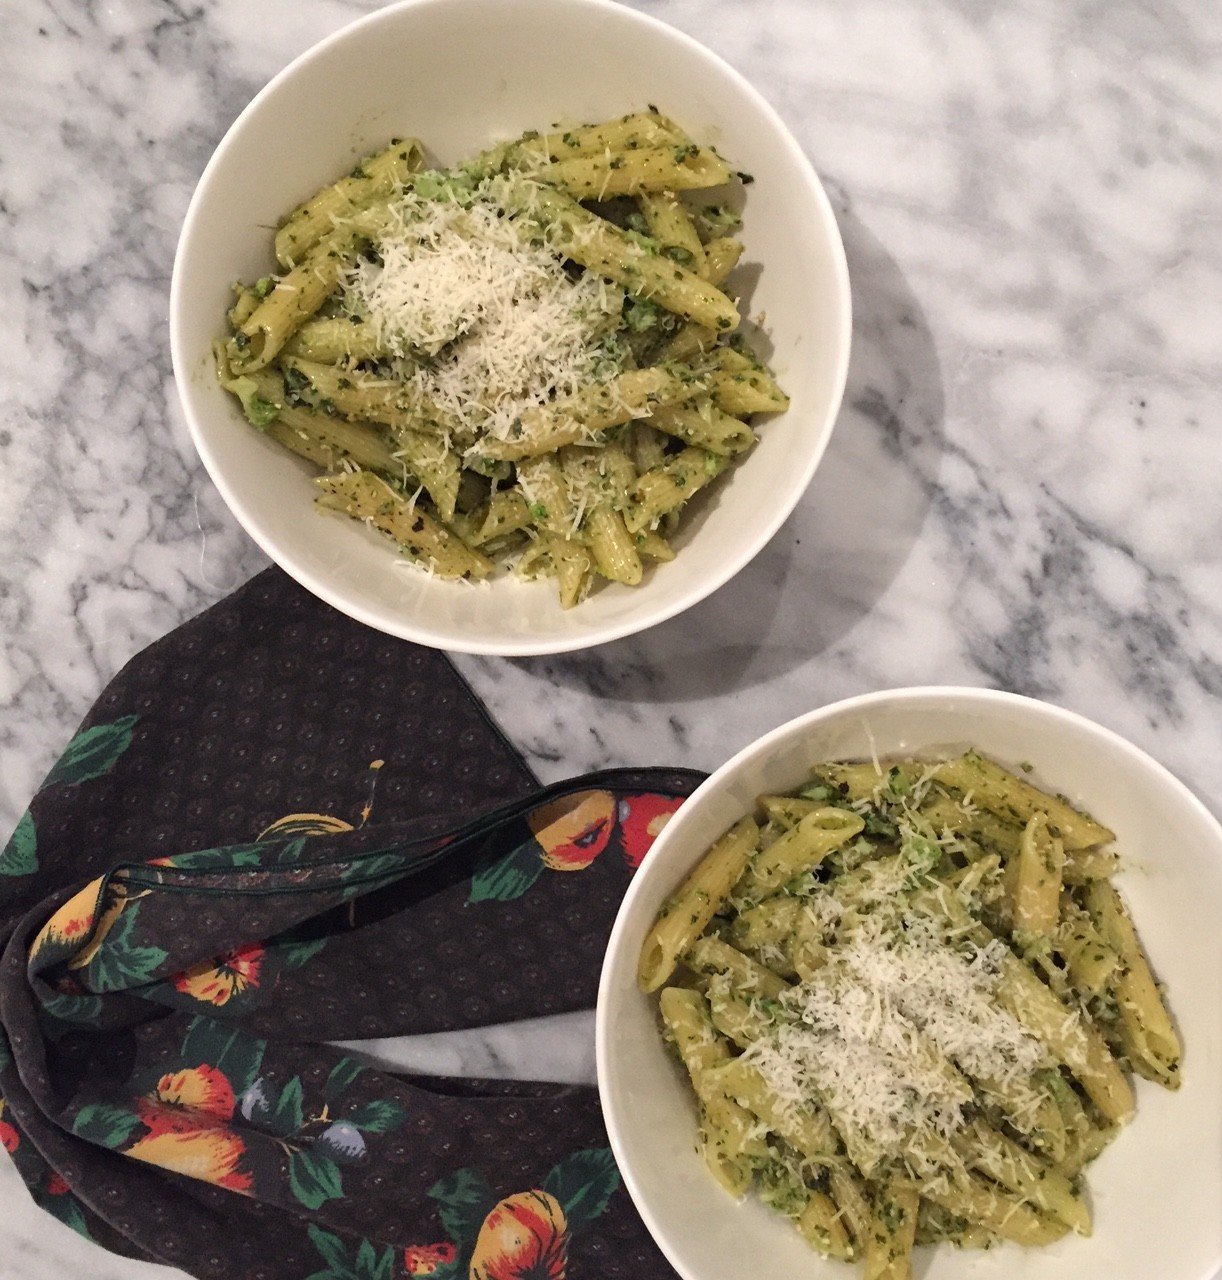 Broccol pesto with penne